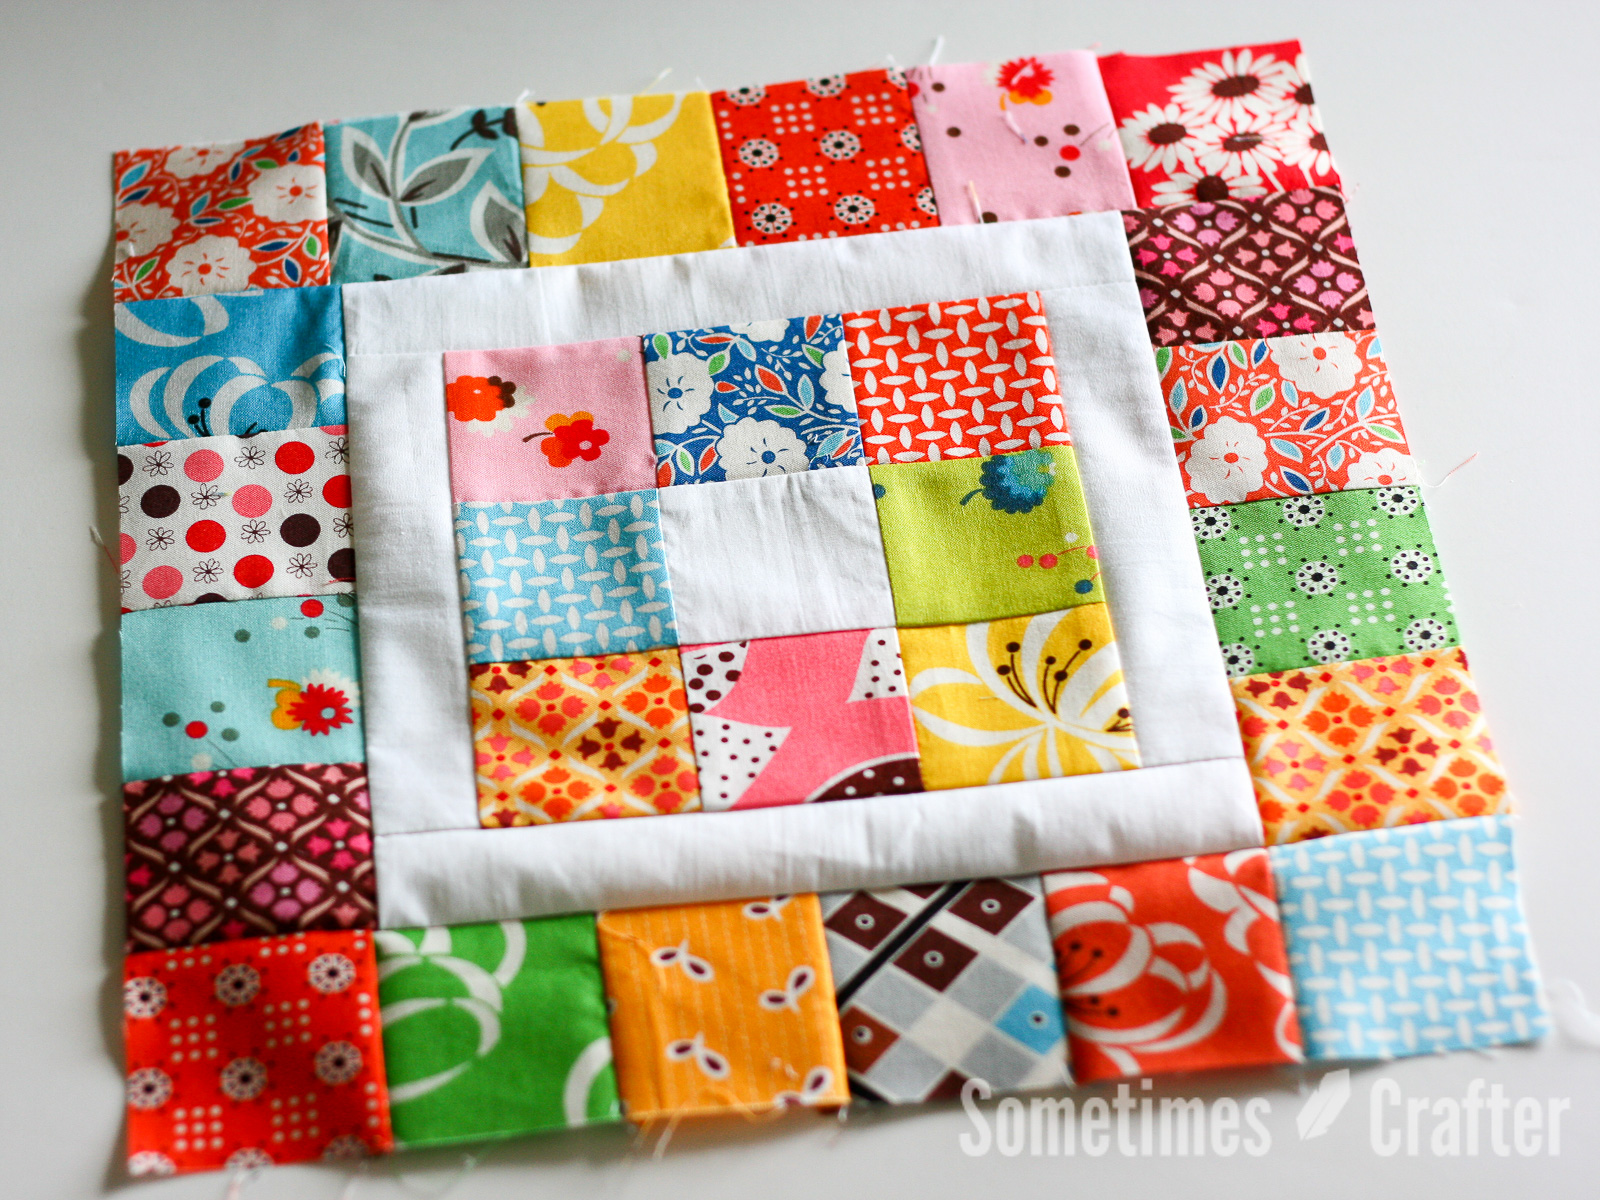 Sometimes Crafter // Square in a Square Block